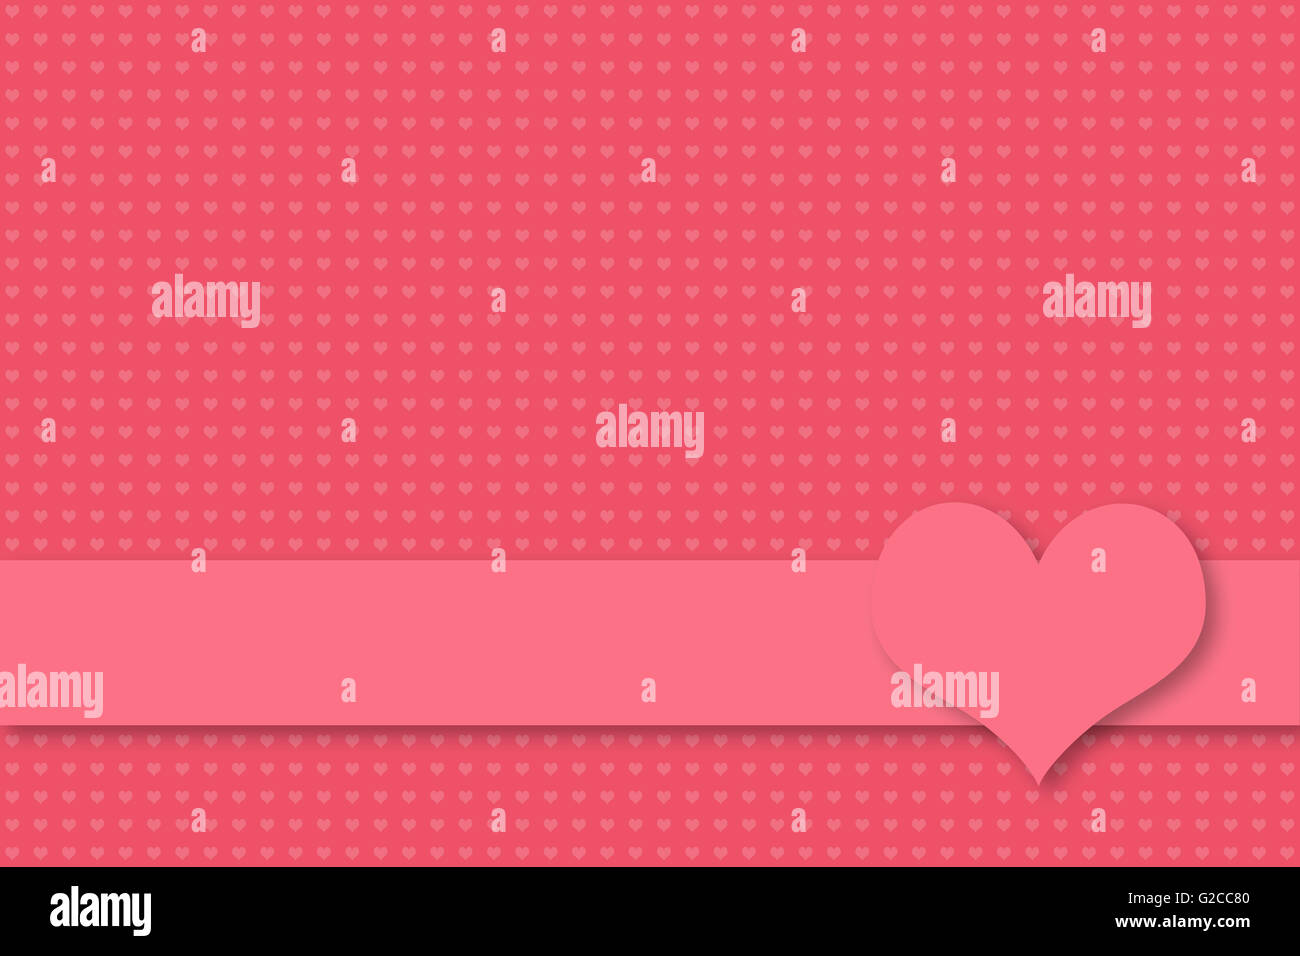 Wedding greetings stock photos wedding greetings stock images alamy pink background with seamless heart texture for valentine and wedding greetings banner with empty text m4hsunfo